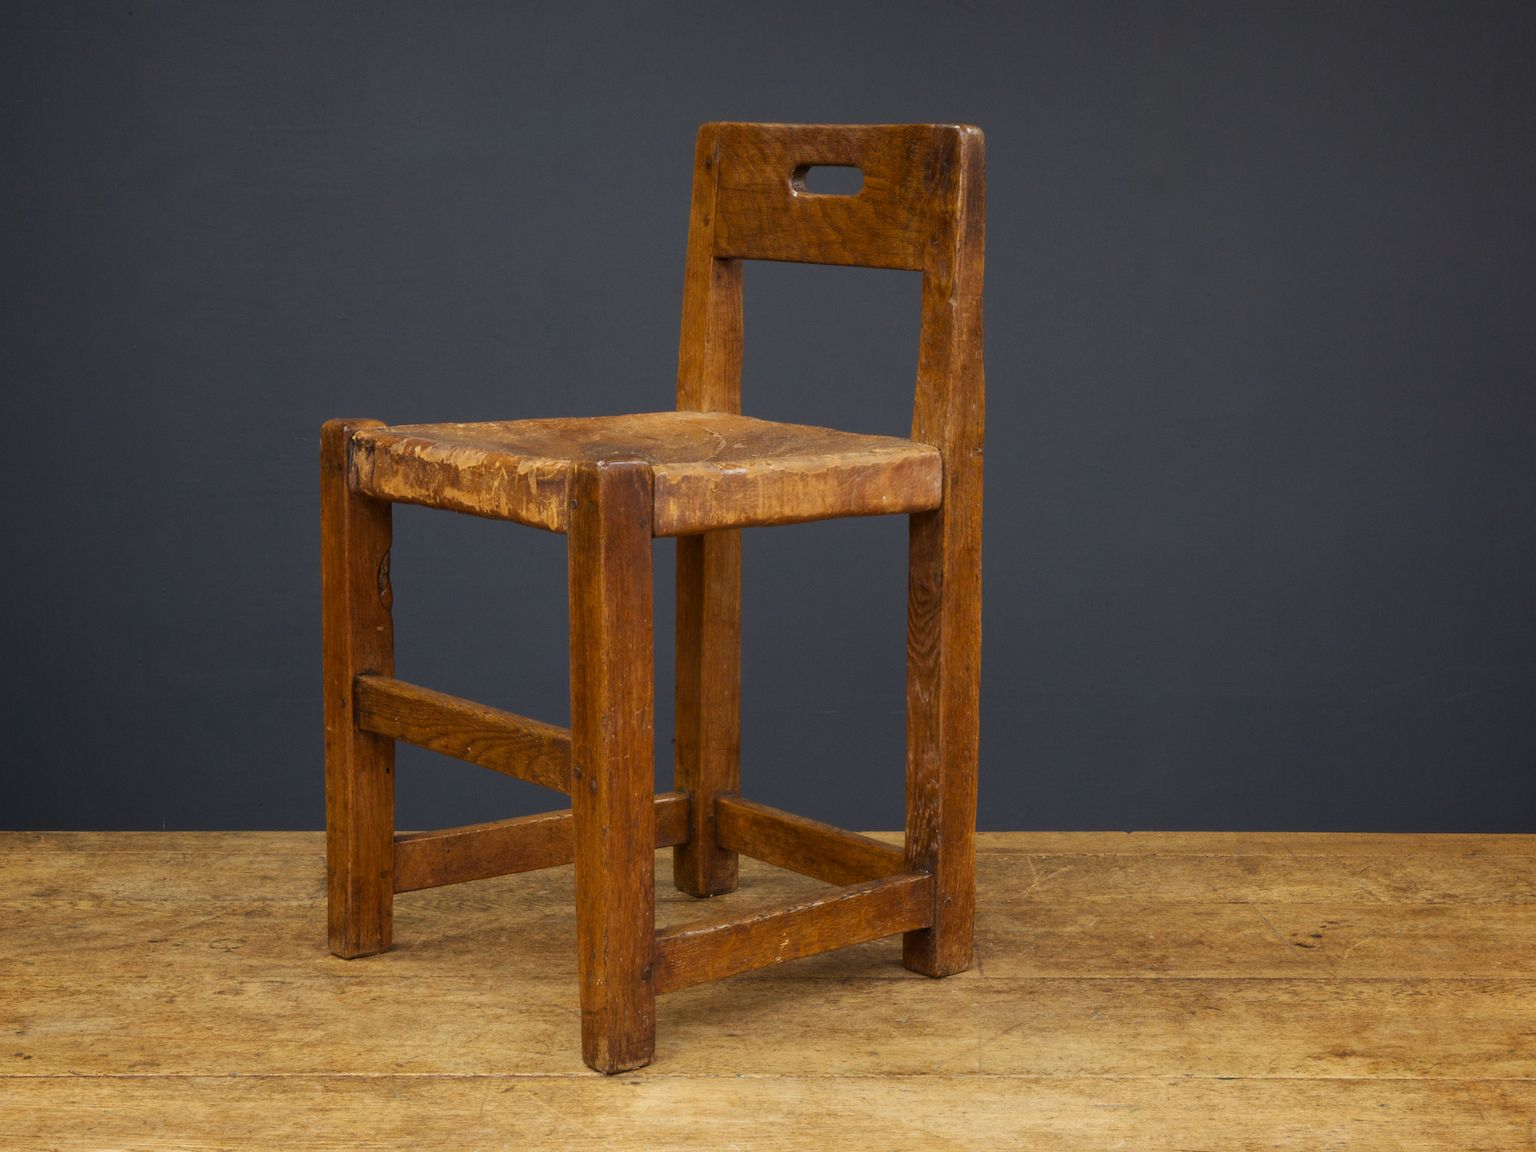 English Oak & Leather Chair from Robert Thompson 1930s